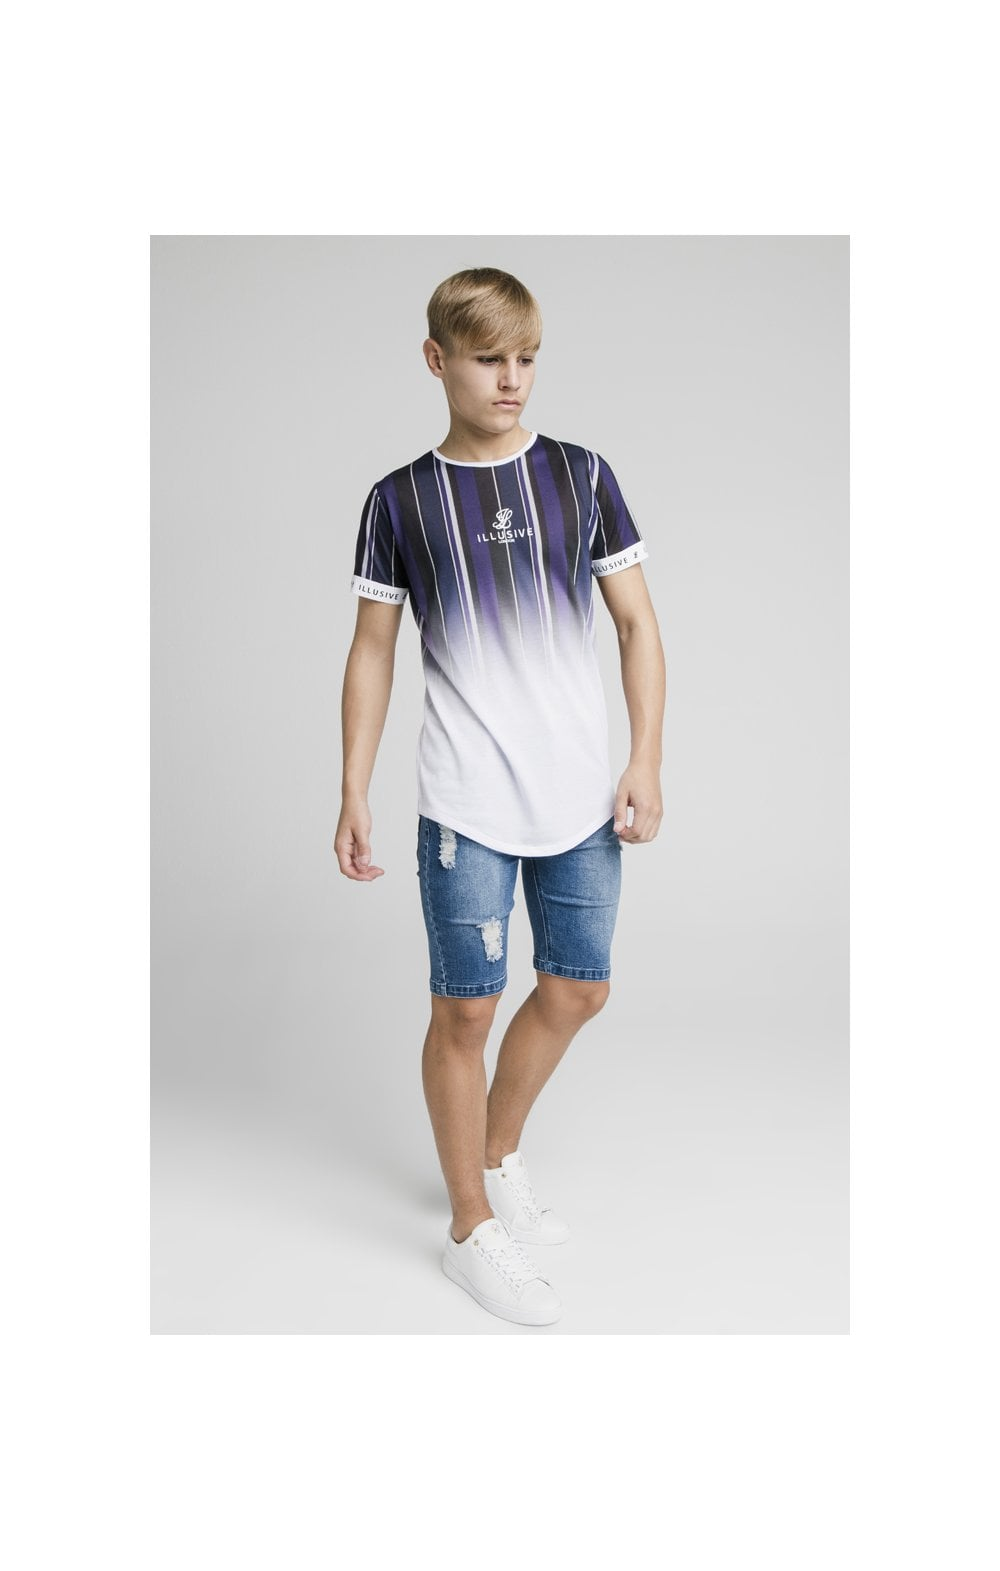 Load image into Gallery viewer, Illusive London Fade Stripe Tech Tee - Navy, Purple, Grey & White (2)